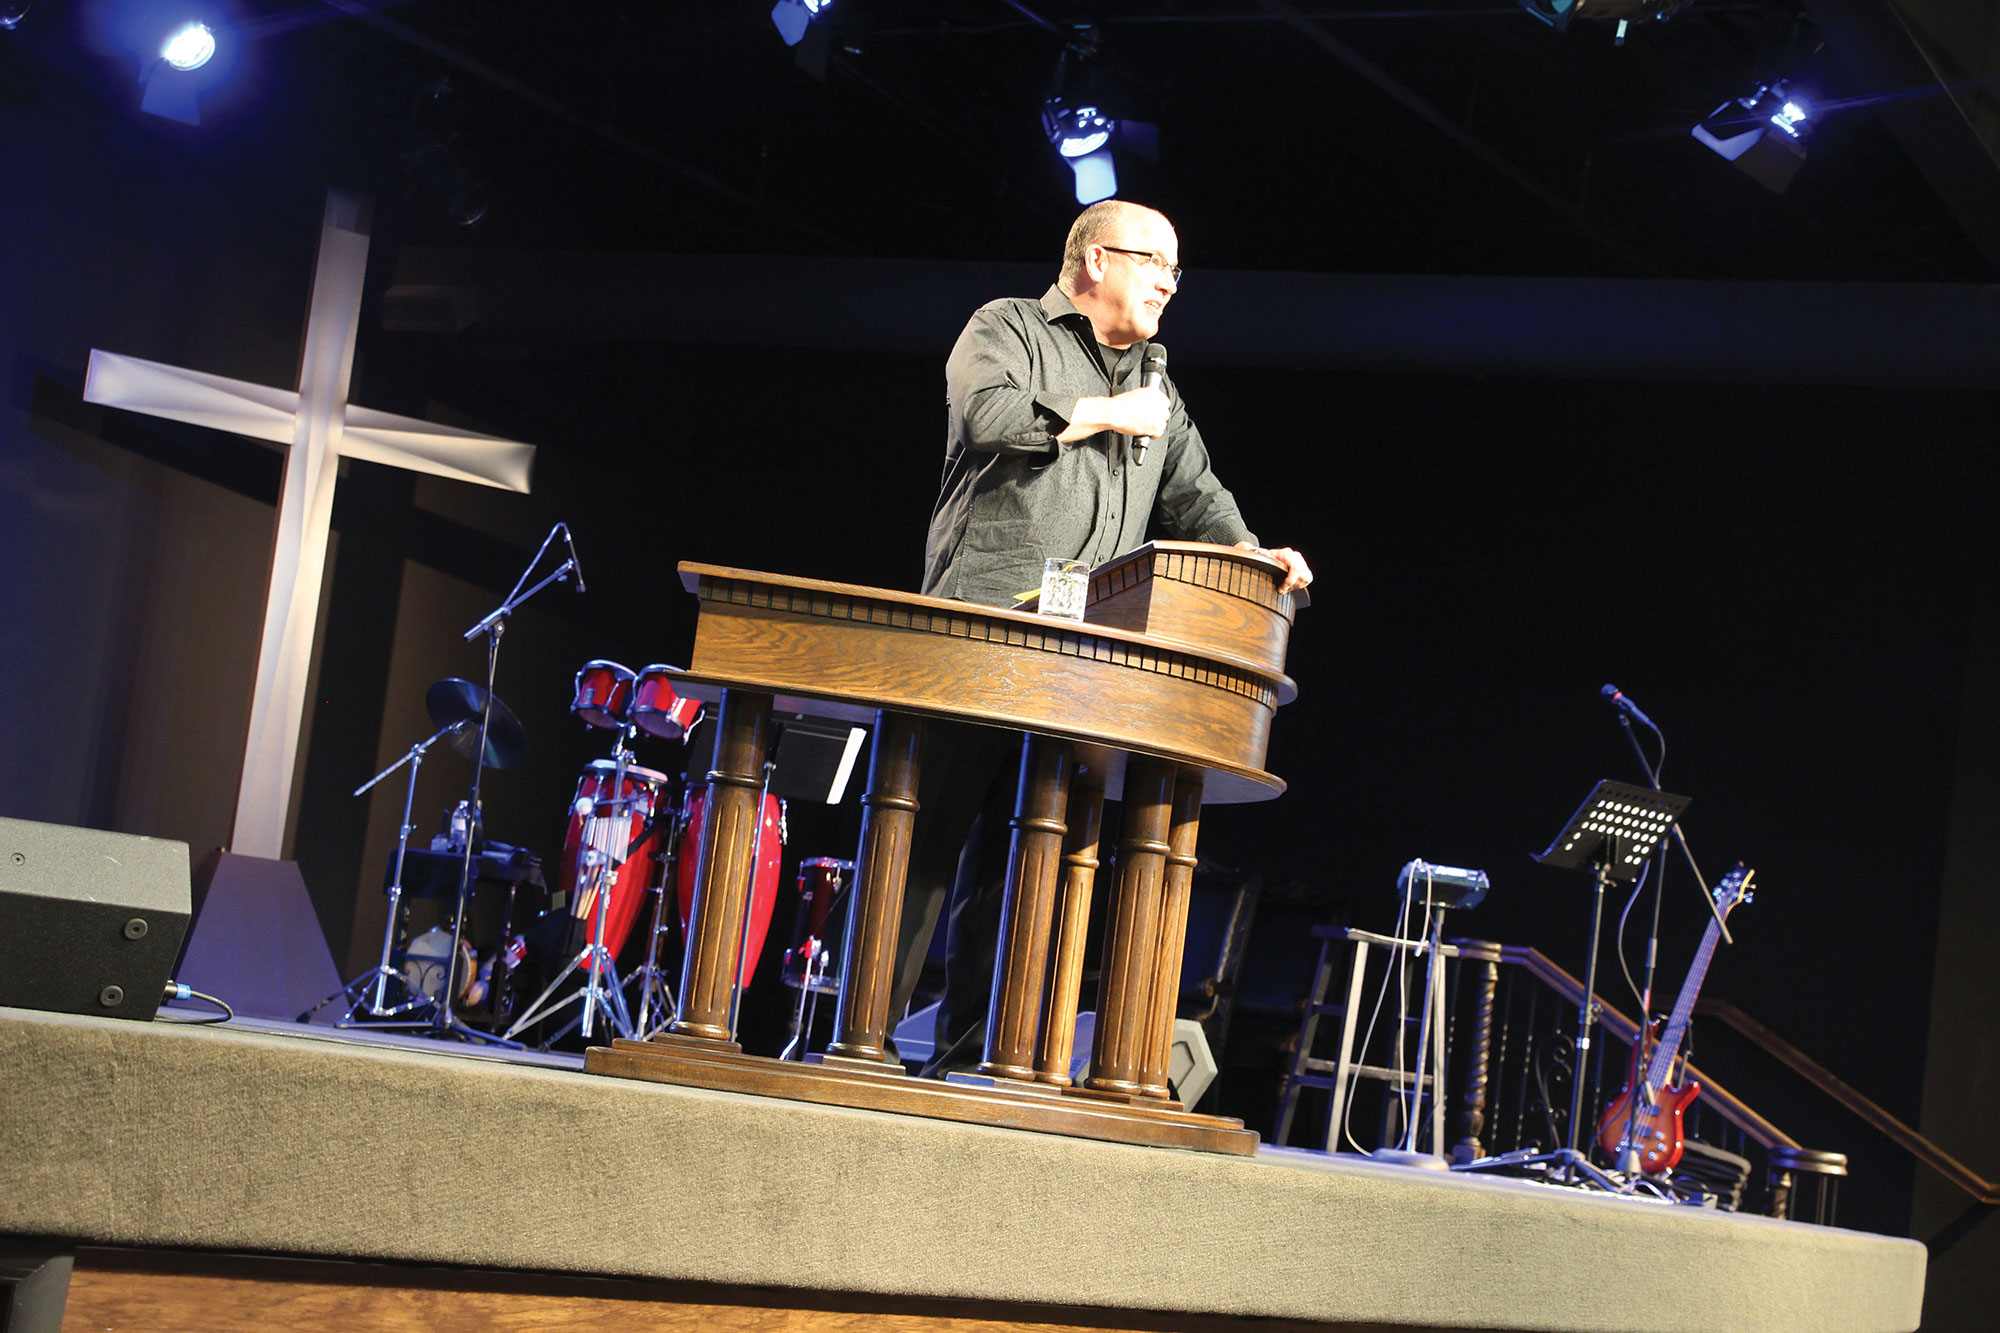 """Senior Pastor Bob Mazeroski spotted a """"diamond in the rough"""" that became the new home of New Life Church."""